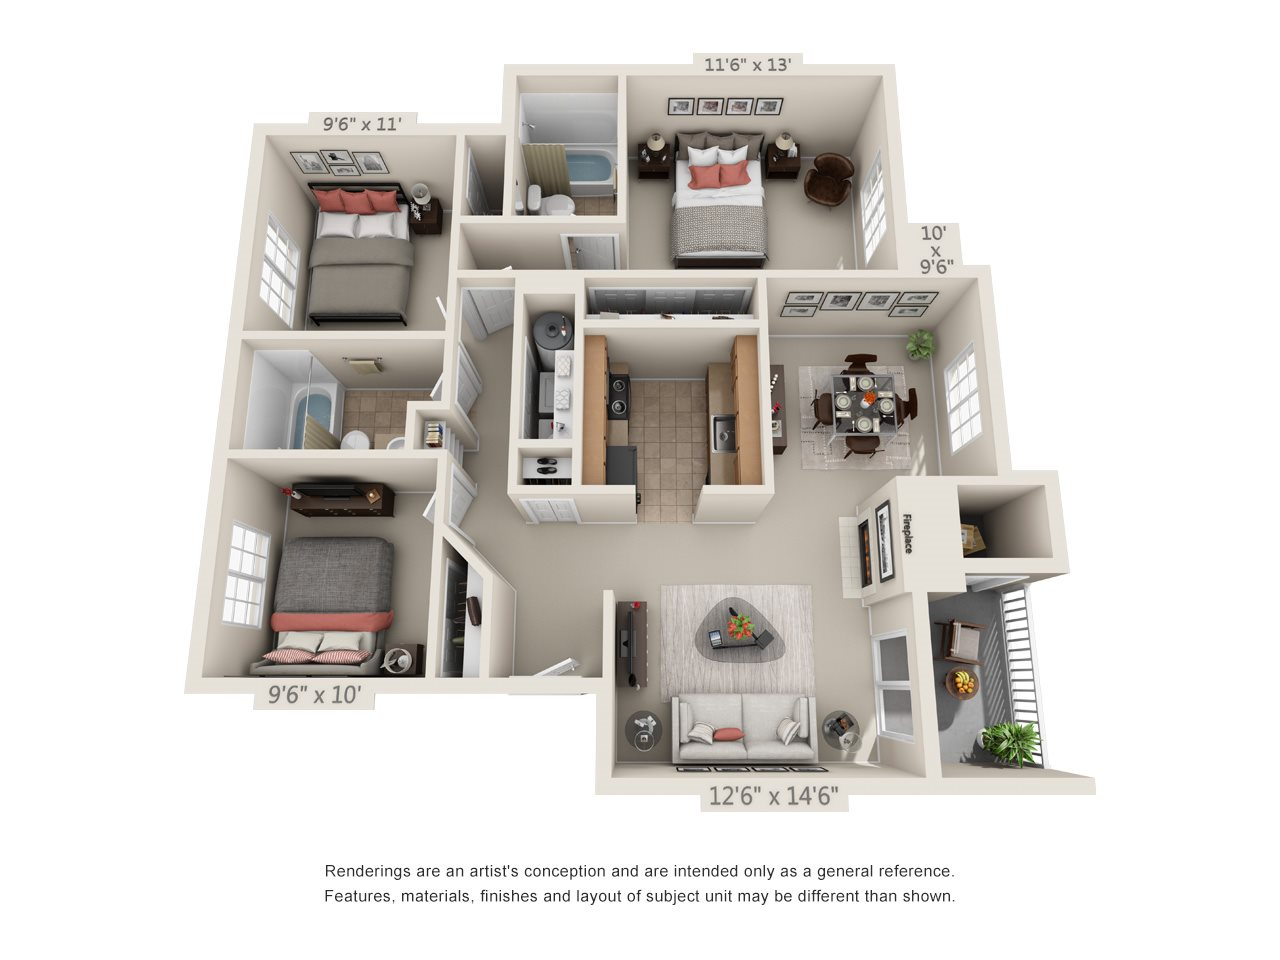 3 Bedroom 2 Bathroom - C1 Floor Plan 5